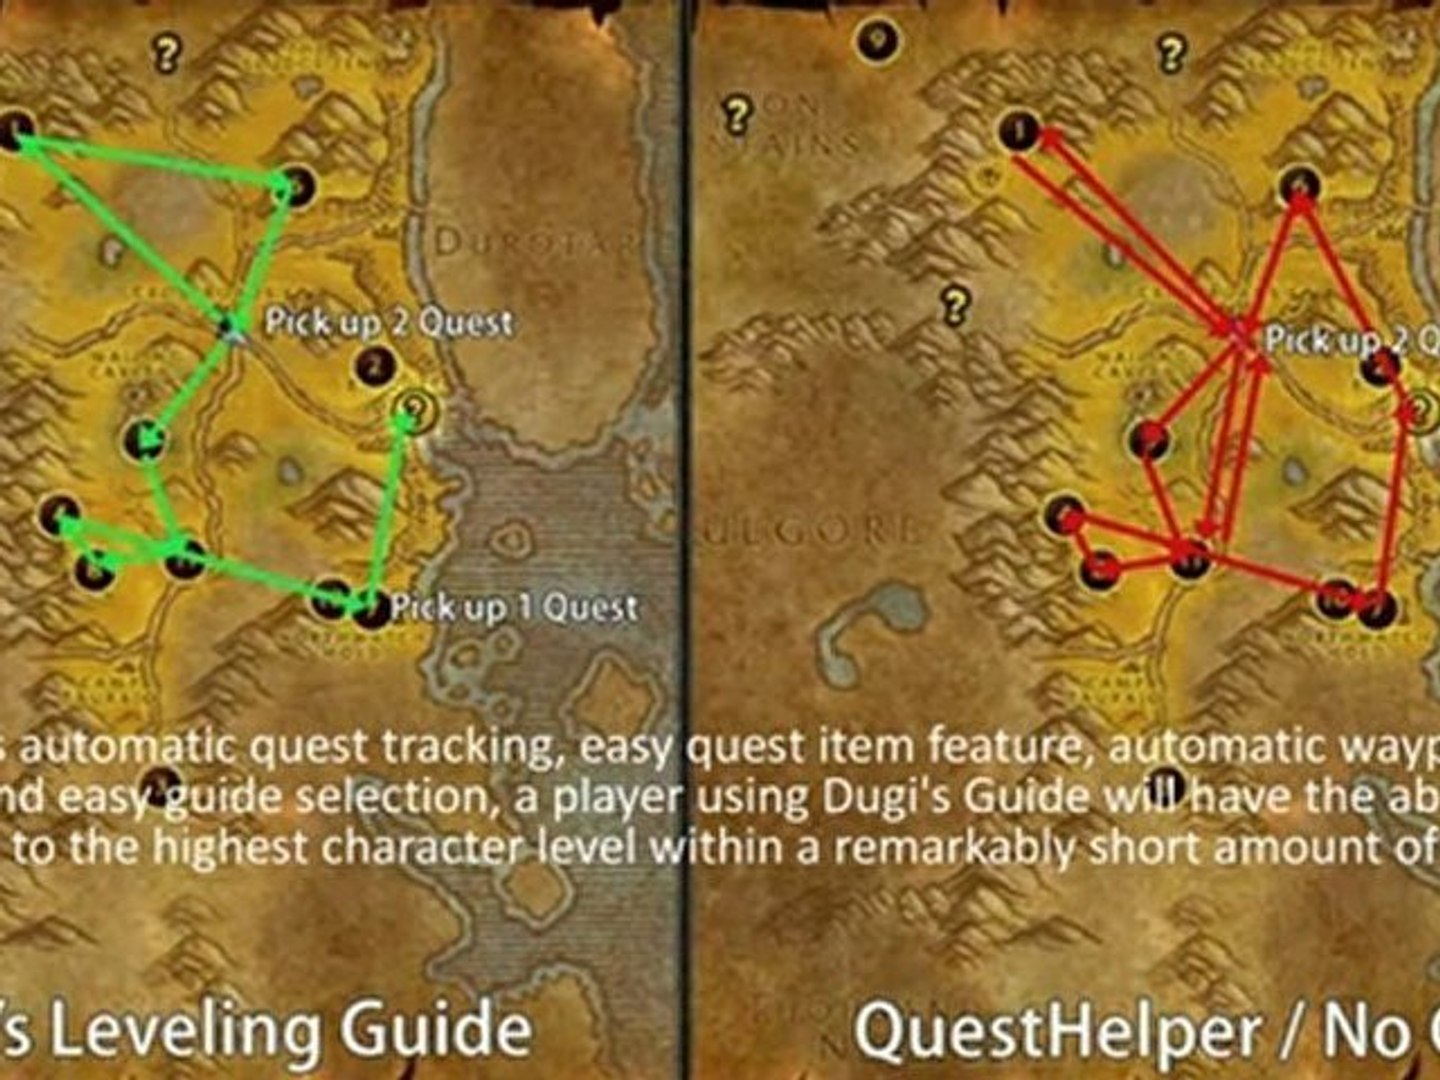 The Best Leveling Guide - Is it Zygor, Dugi, Or Joana?